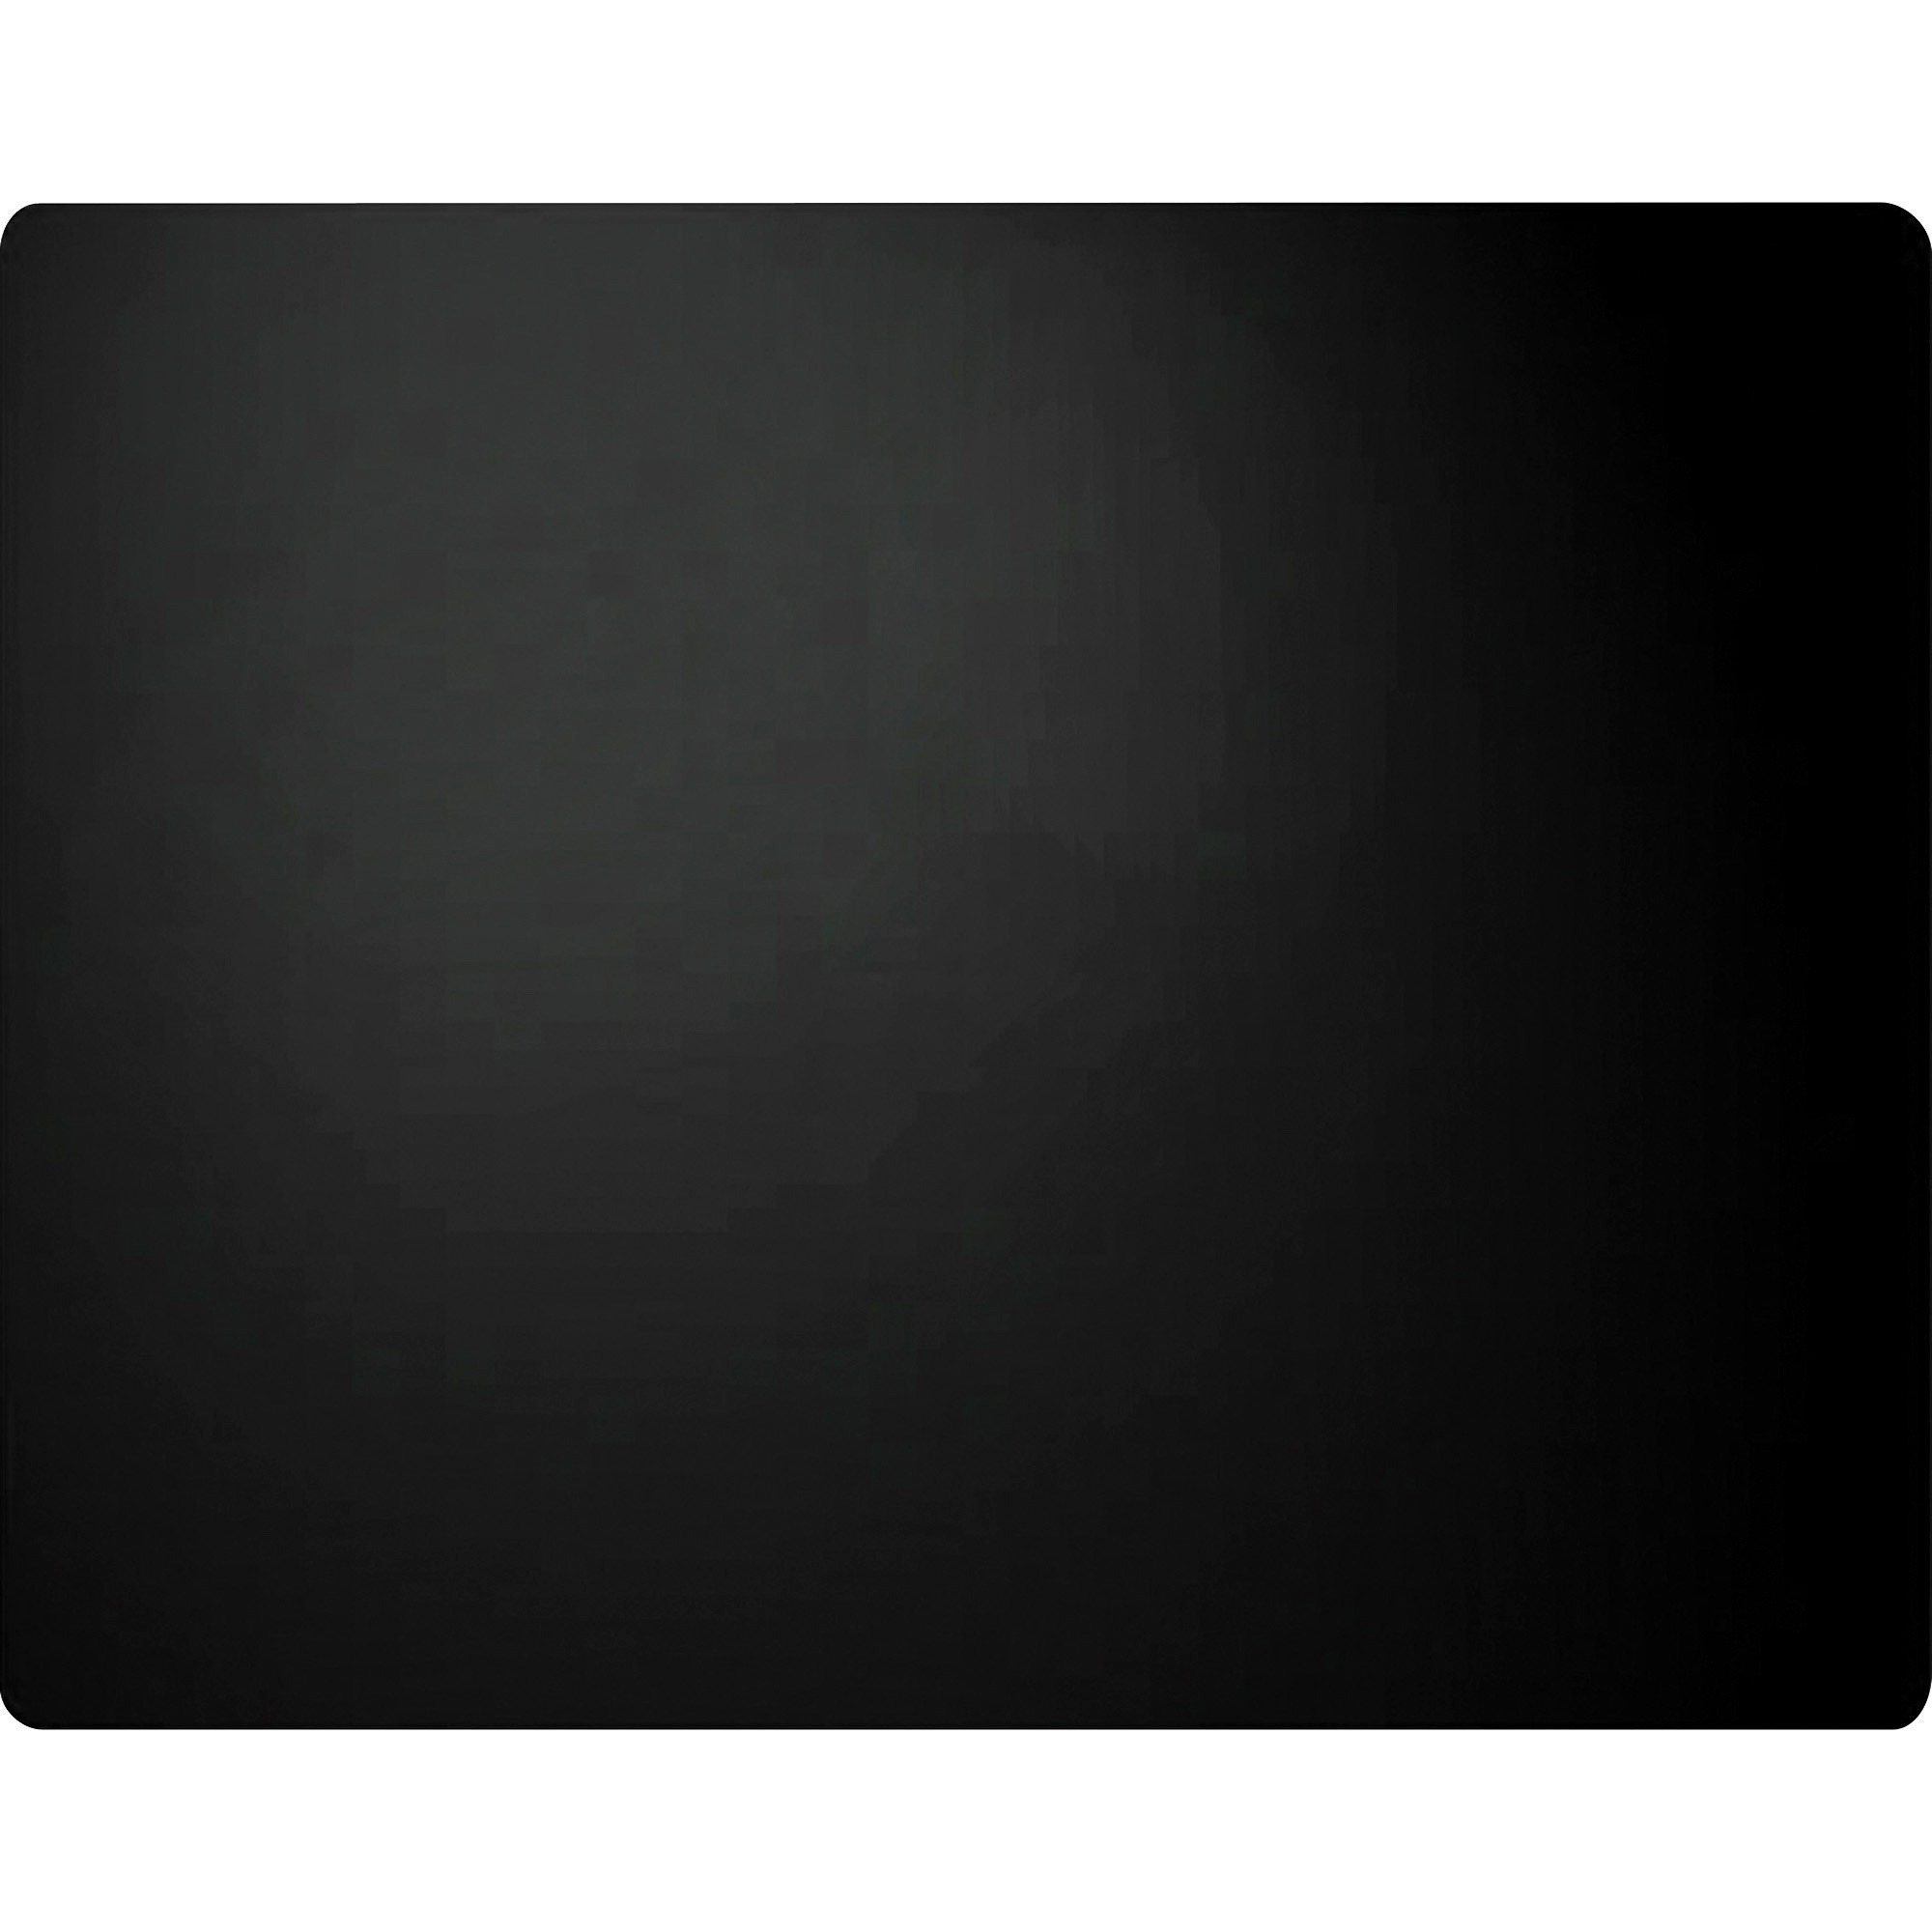 Artistic Plain Leather Desk Pad Rectangle 36 914 40 Mm Width Black